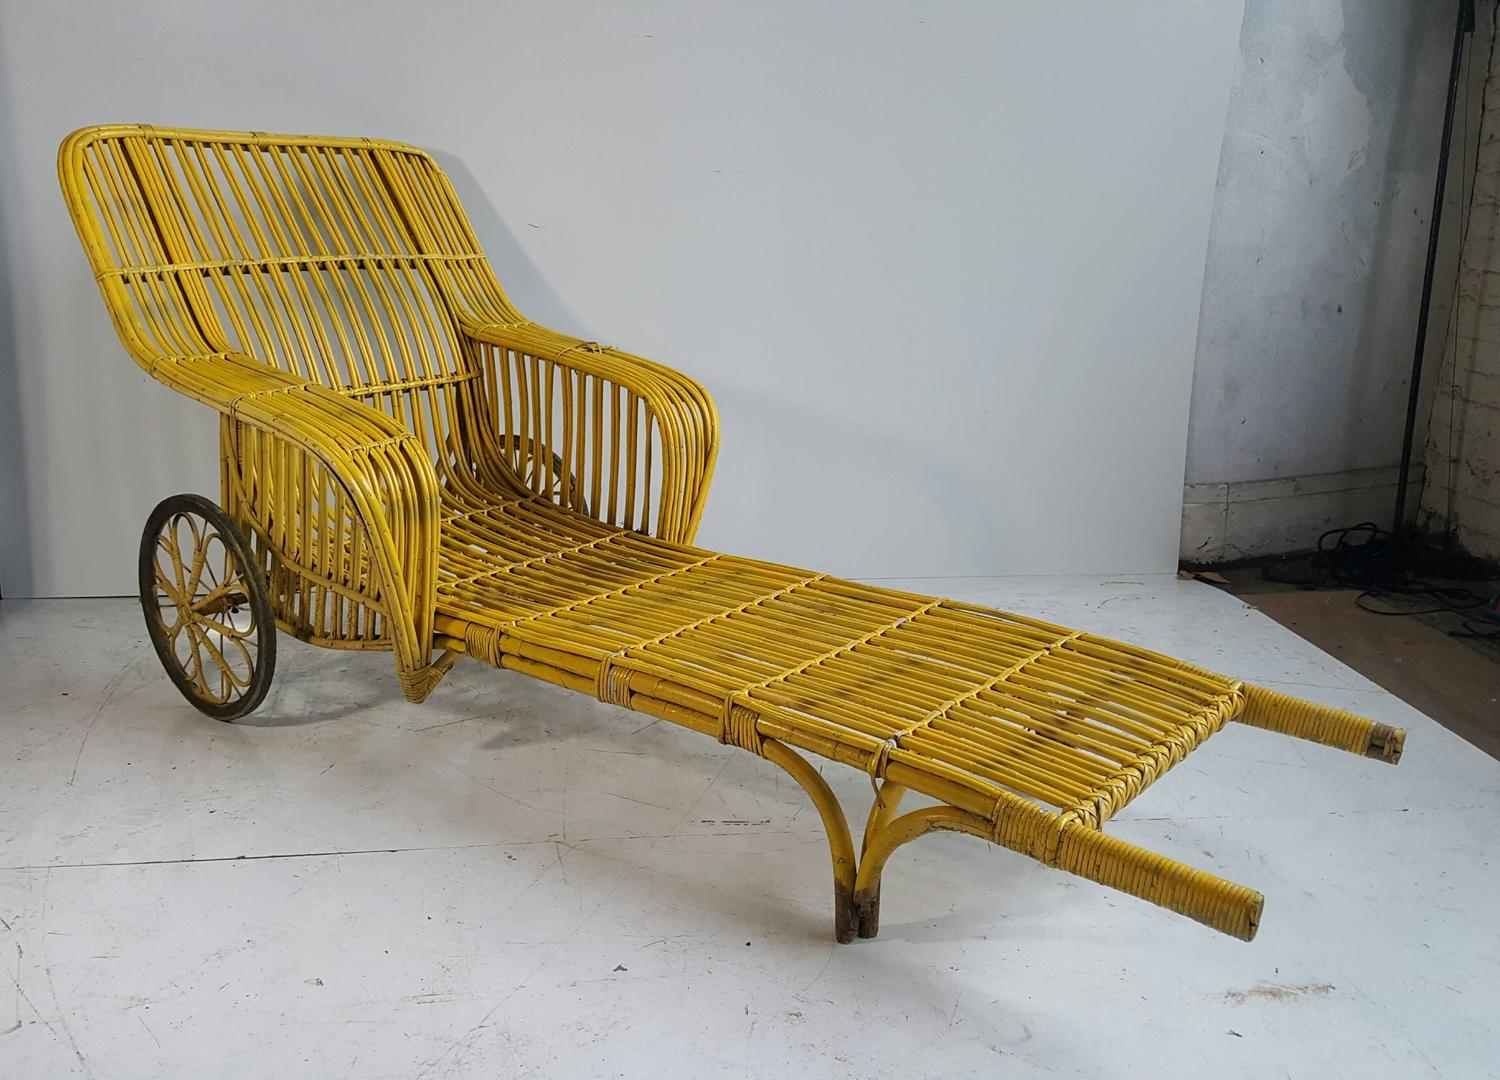 pair of unusual art deco 39 rickshaw split reed stick wicker chaise lounge chairs for sale at 1stdibs. Black Bedroom Furniture Sets. Home Design Ideas